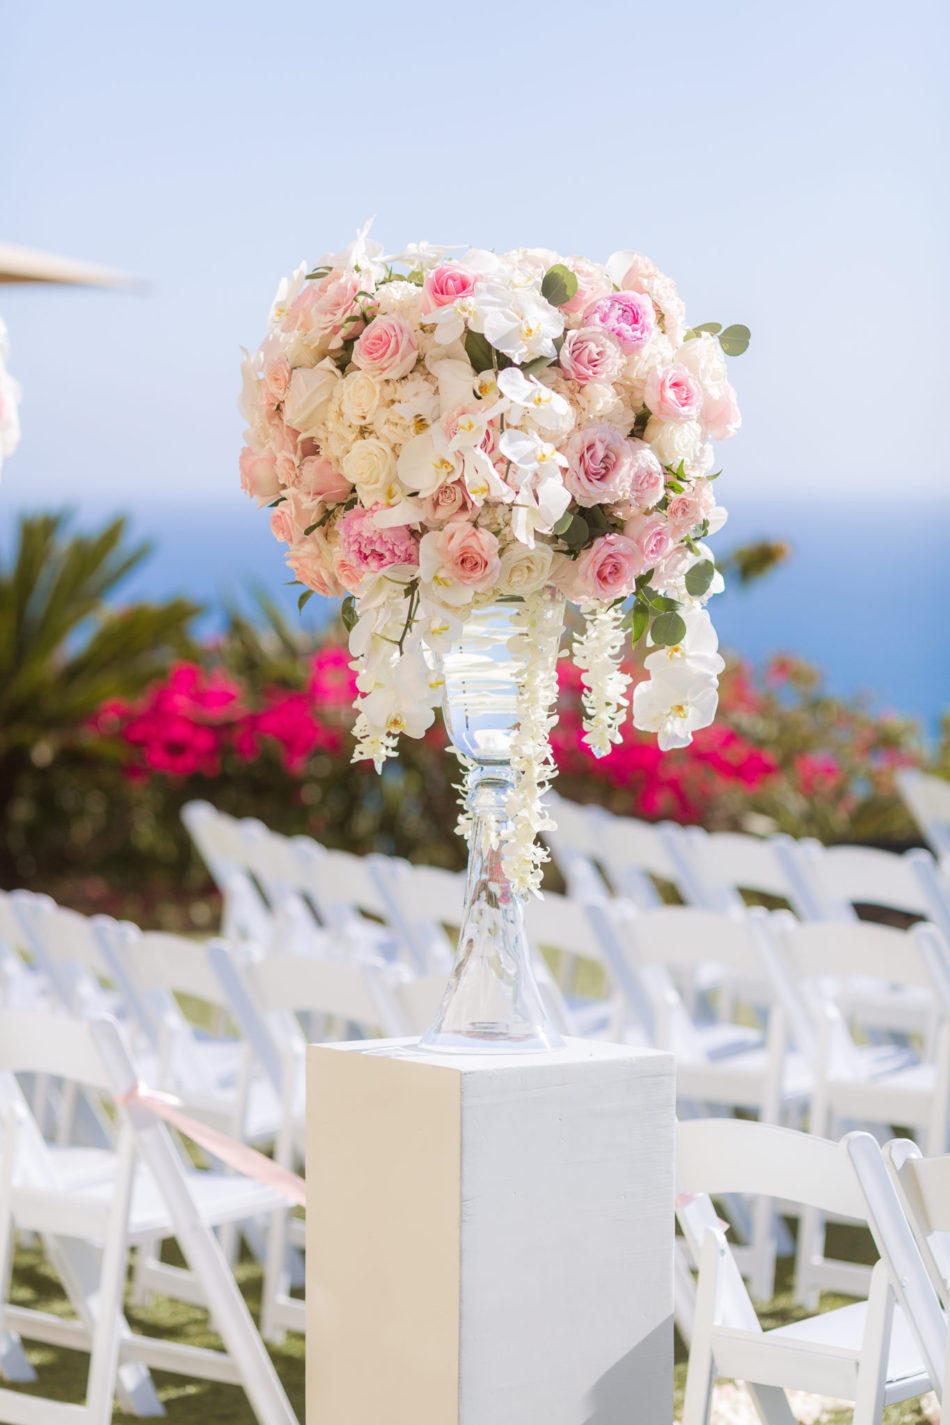 pink ceremony florals, pink ceremony decor, oceanfront wedding, floral design, florist, wedding florist, wedding flowers, orange county weddings, orange county wedding florist, orange county florist, orange county floral design, flowers by cina